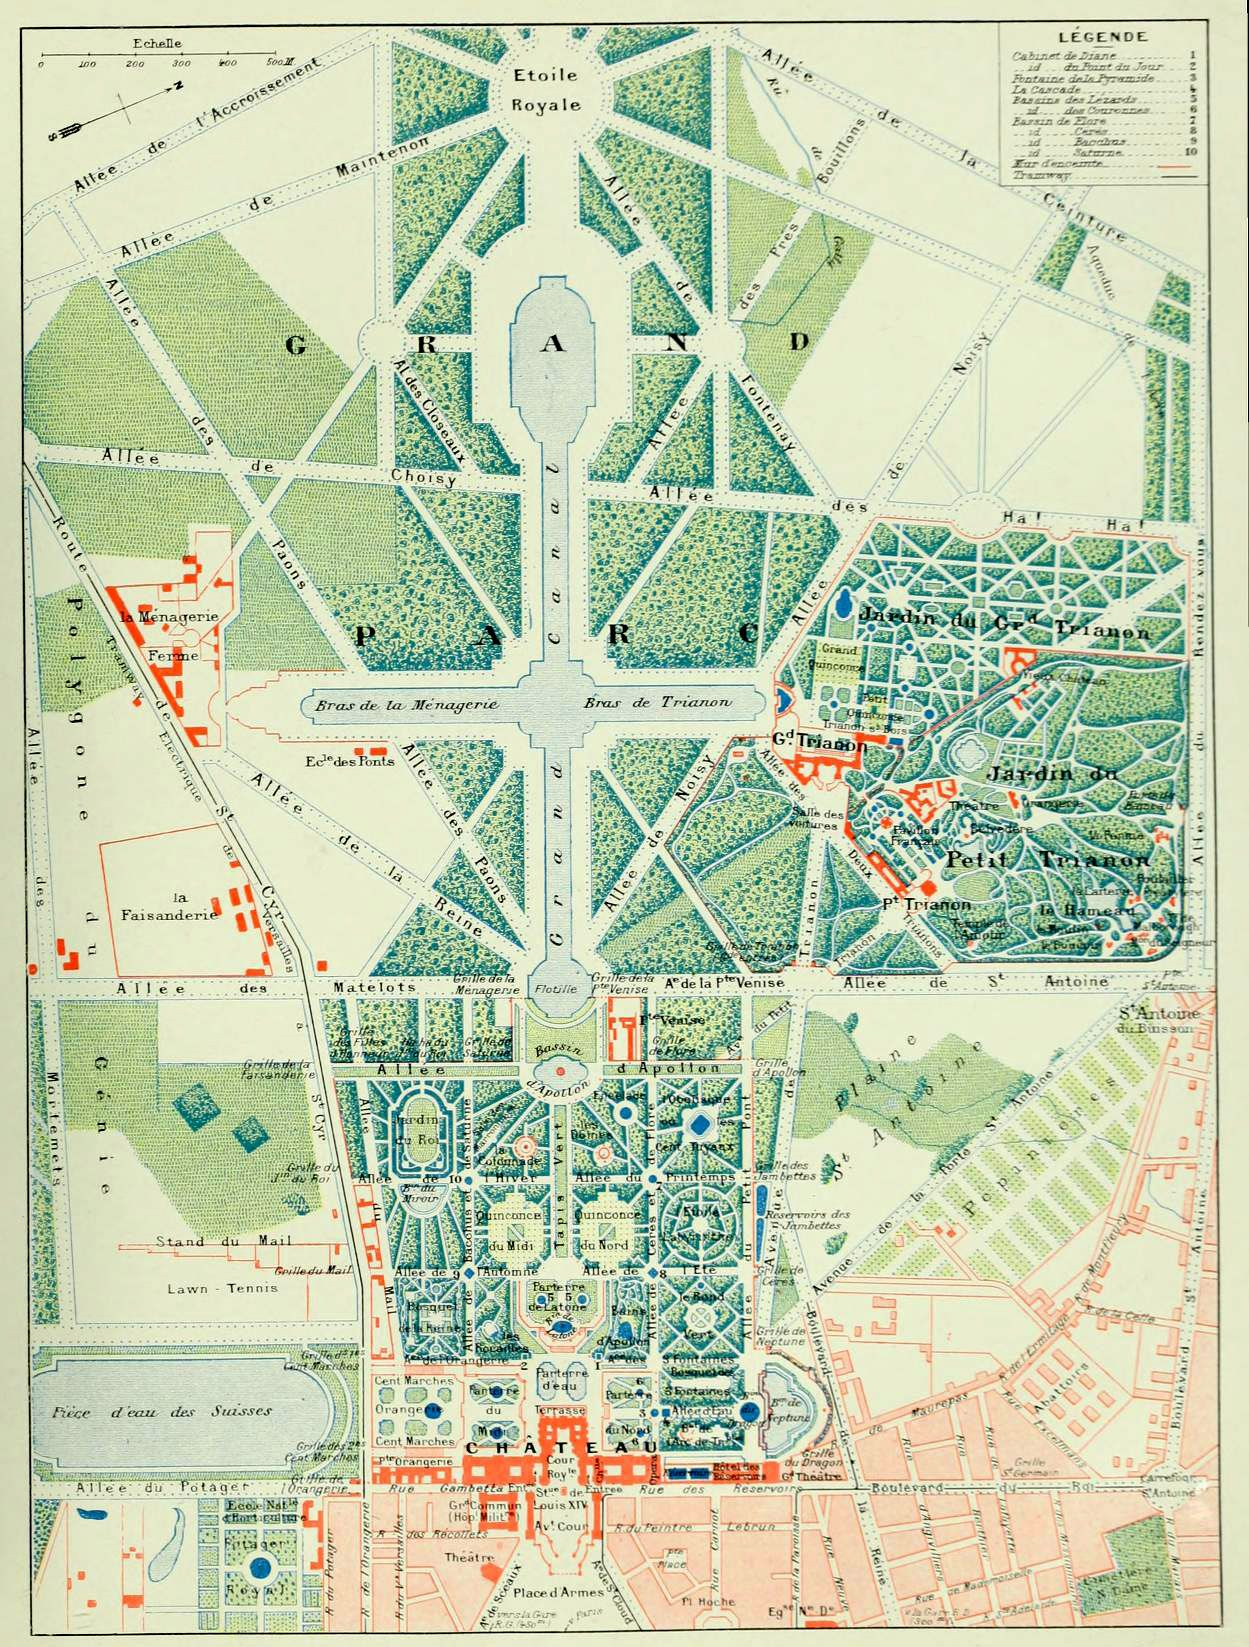 Plan of the park of Versailles One of the pathways is